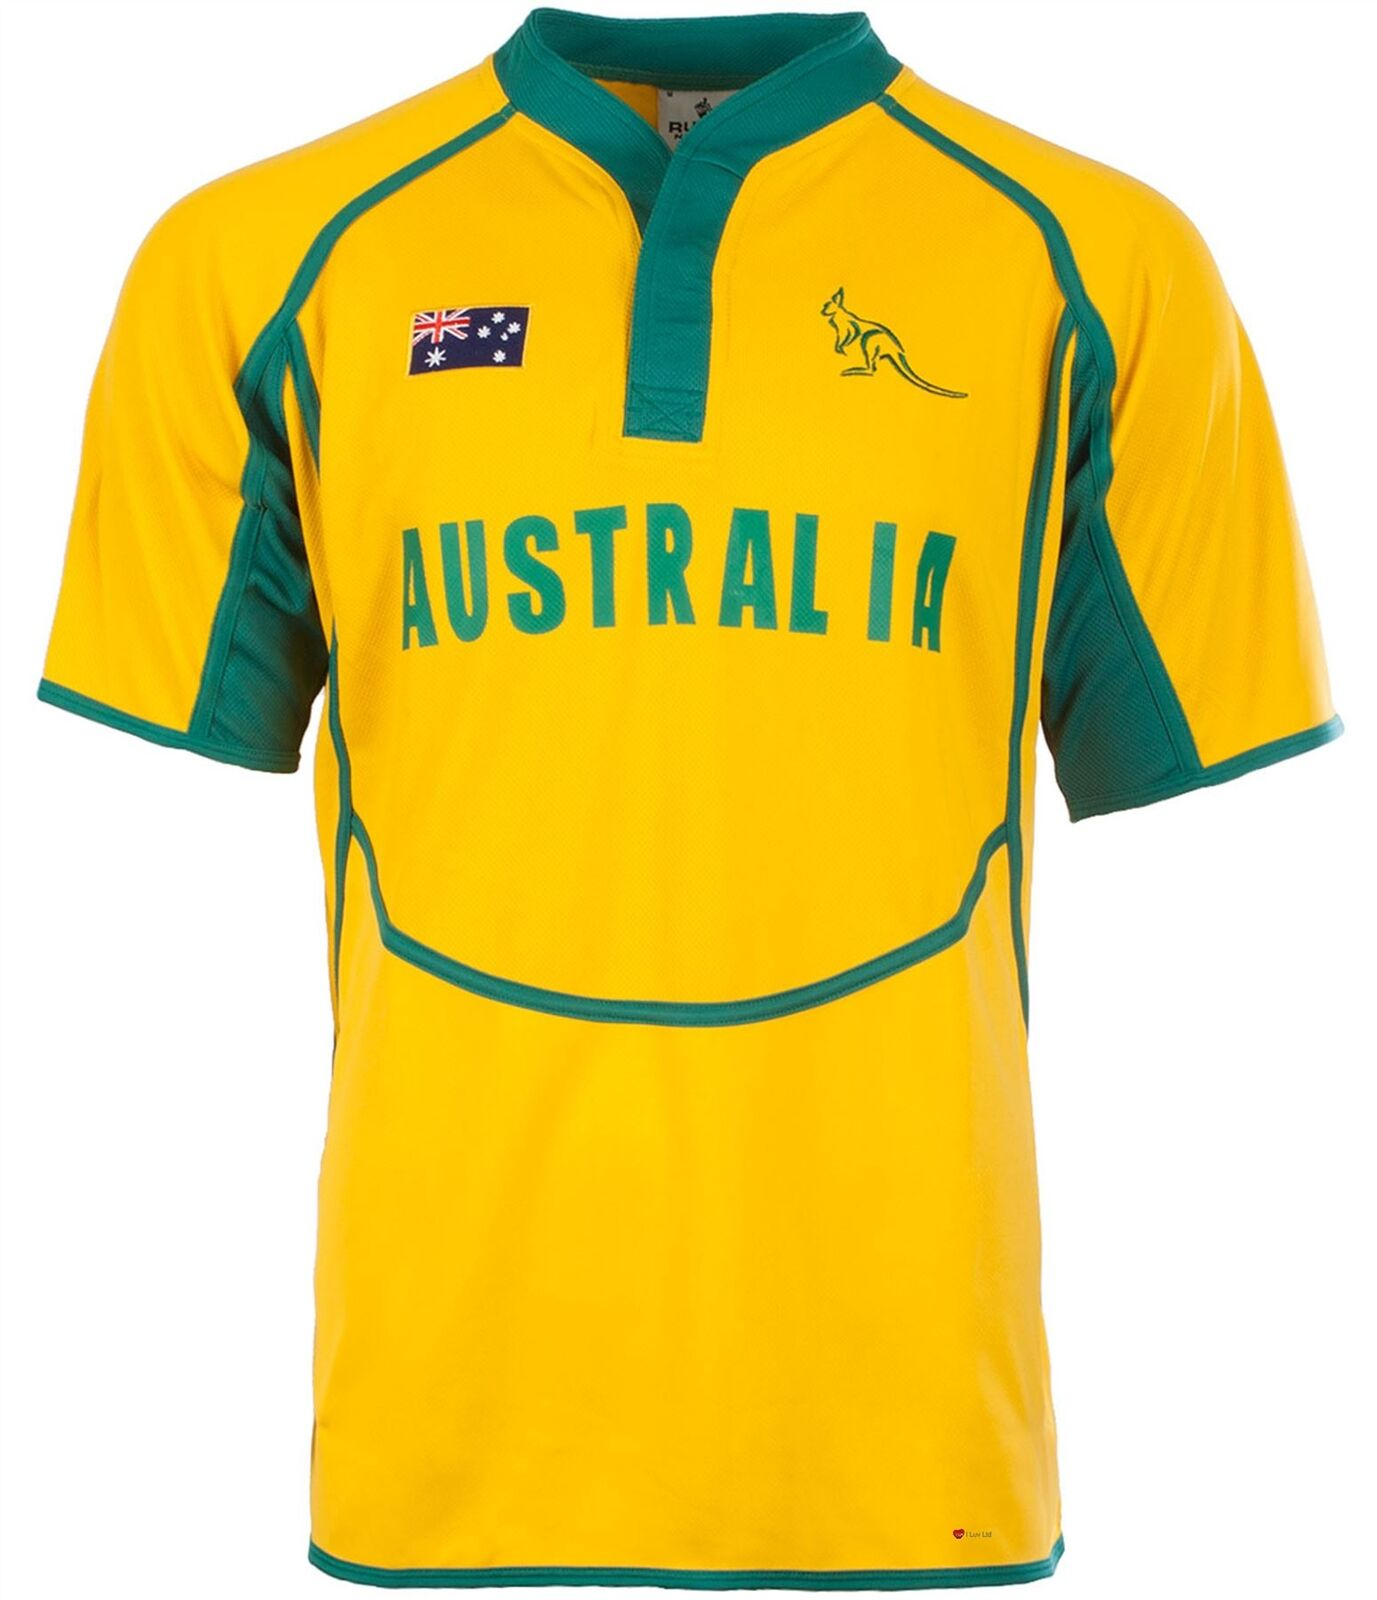 Gents Cooldry Style Rugby Rugby Rugby Shirt In Australia Colours Größe X-Large a9151c